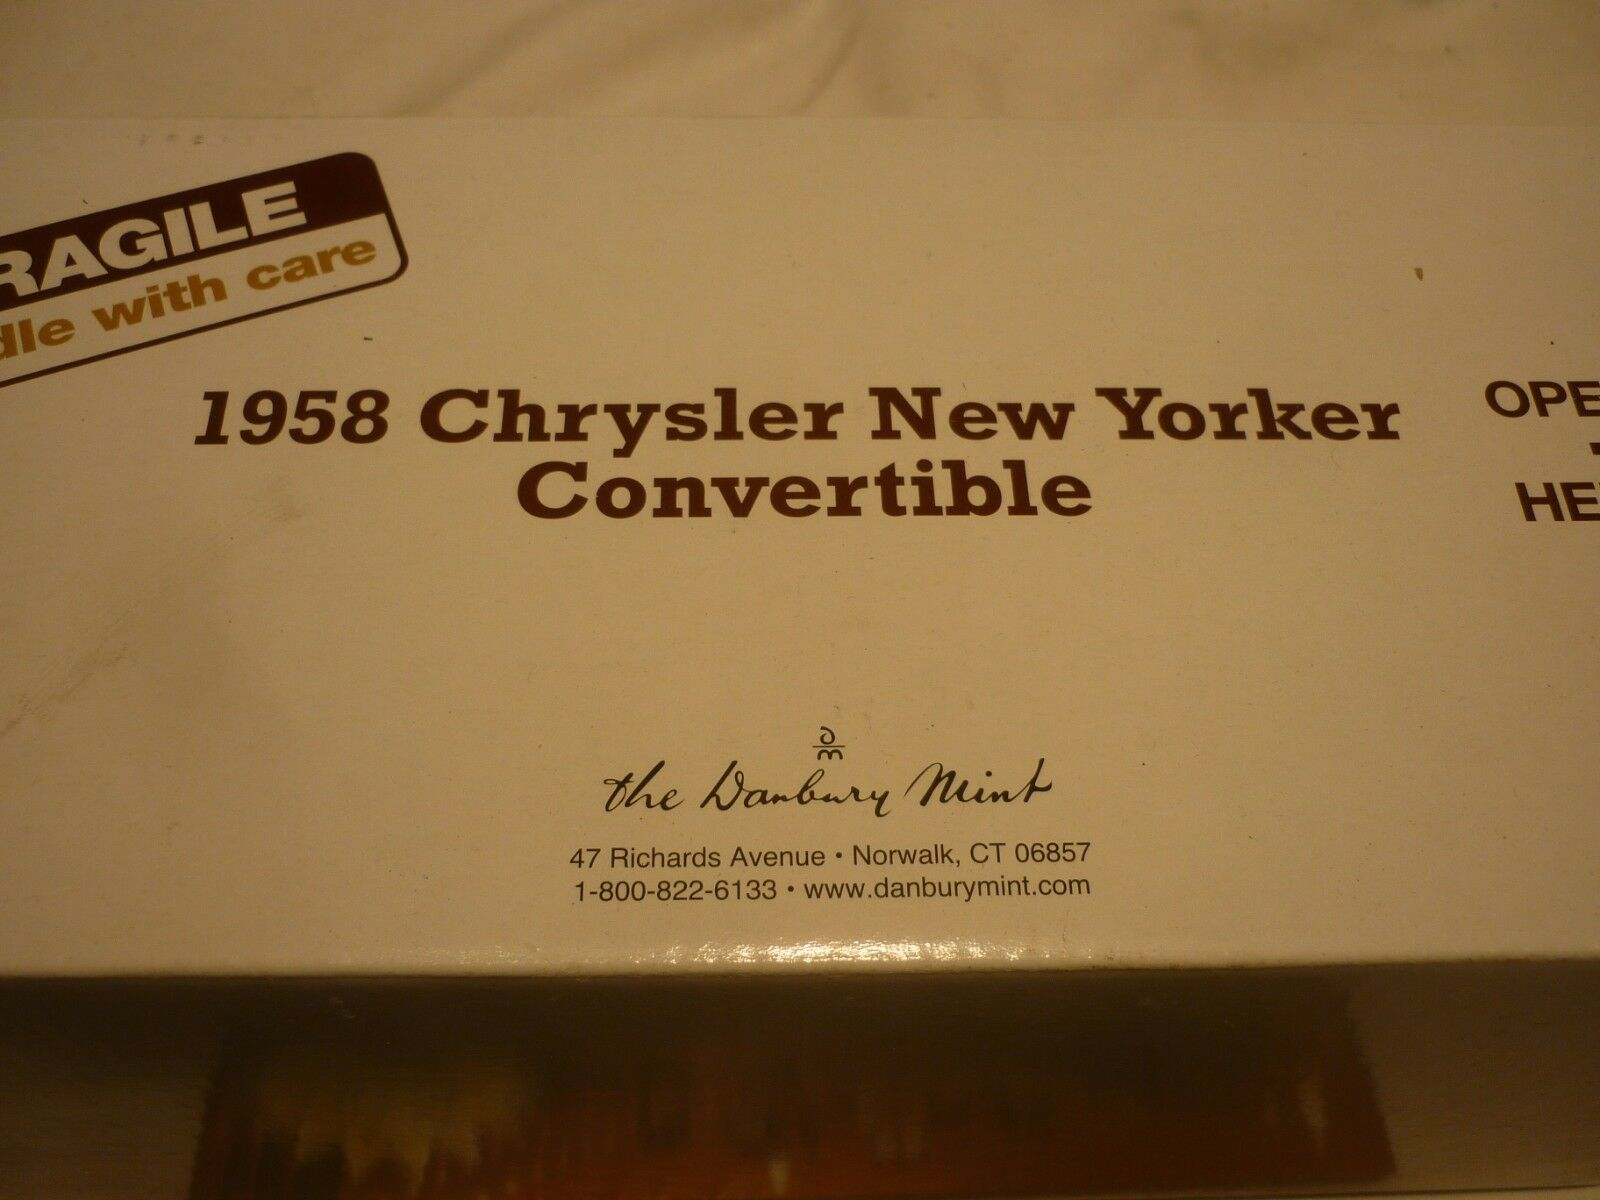 A Danbury mint Scale model of a 1958 Chrysler new Yorker congreenible.